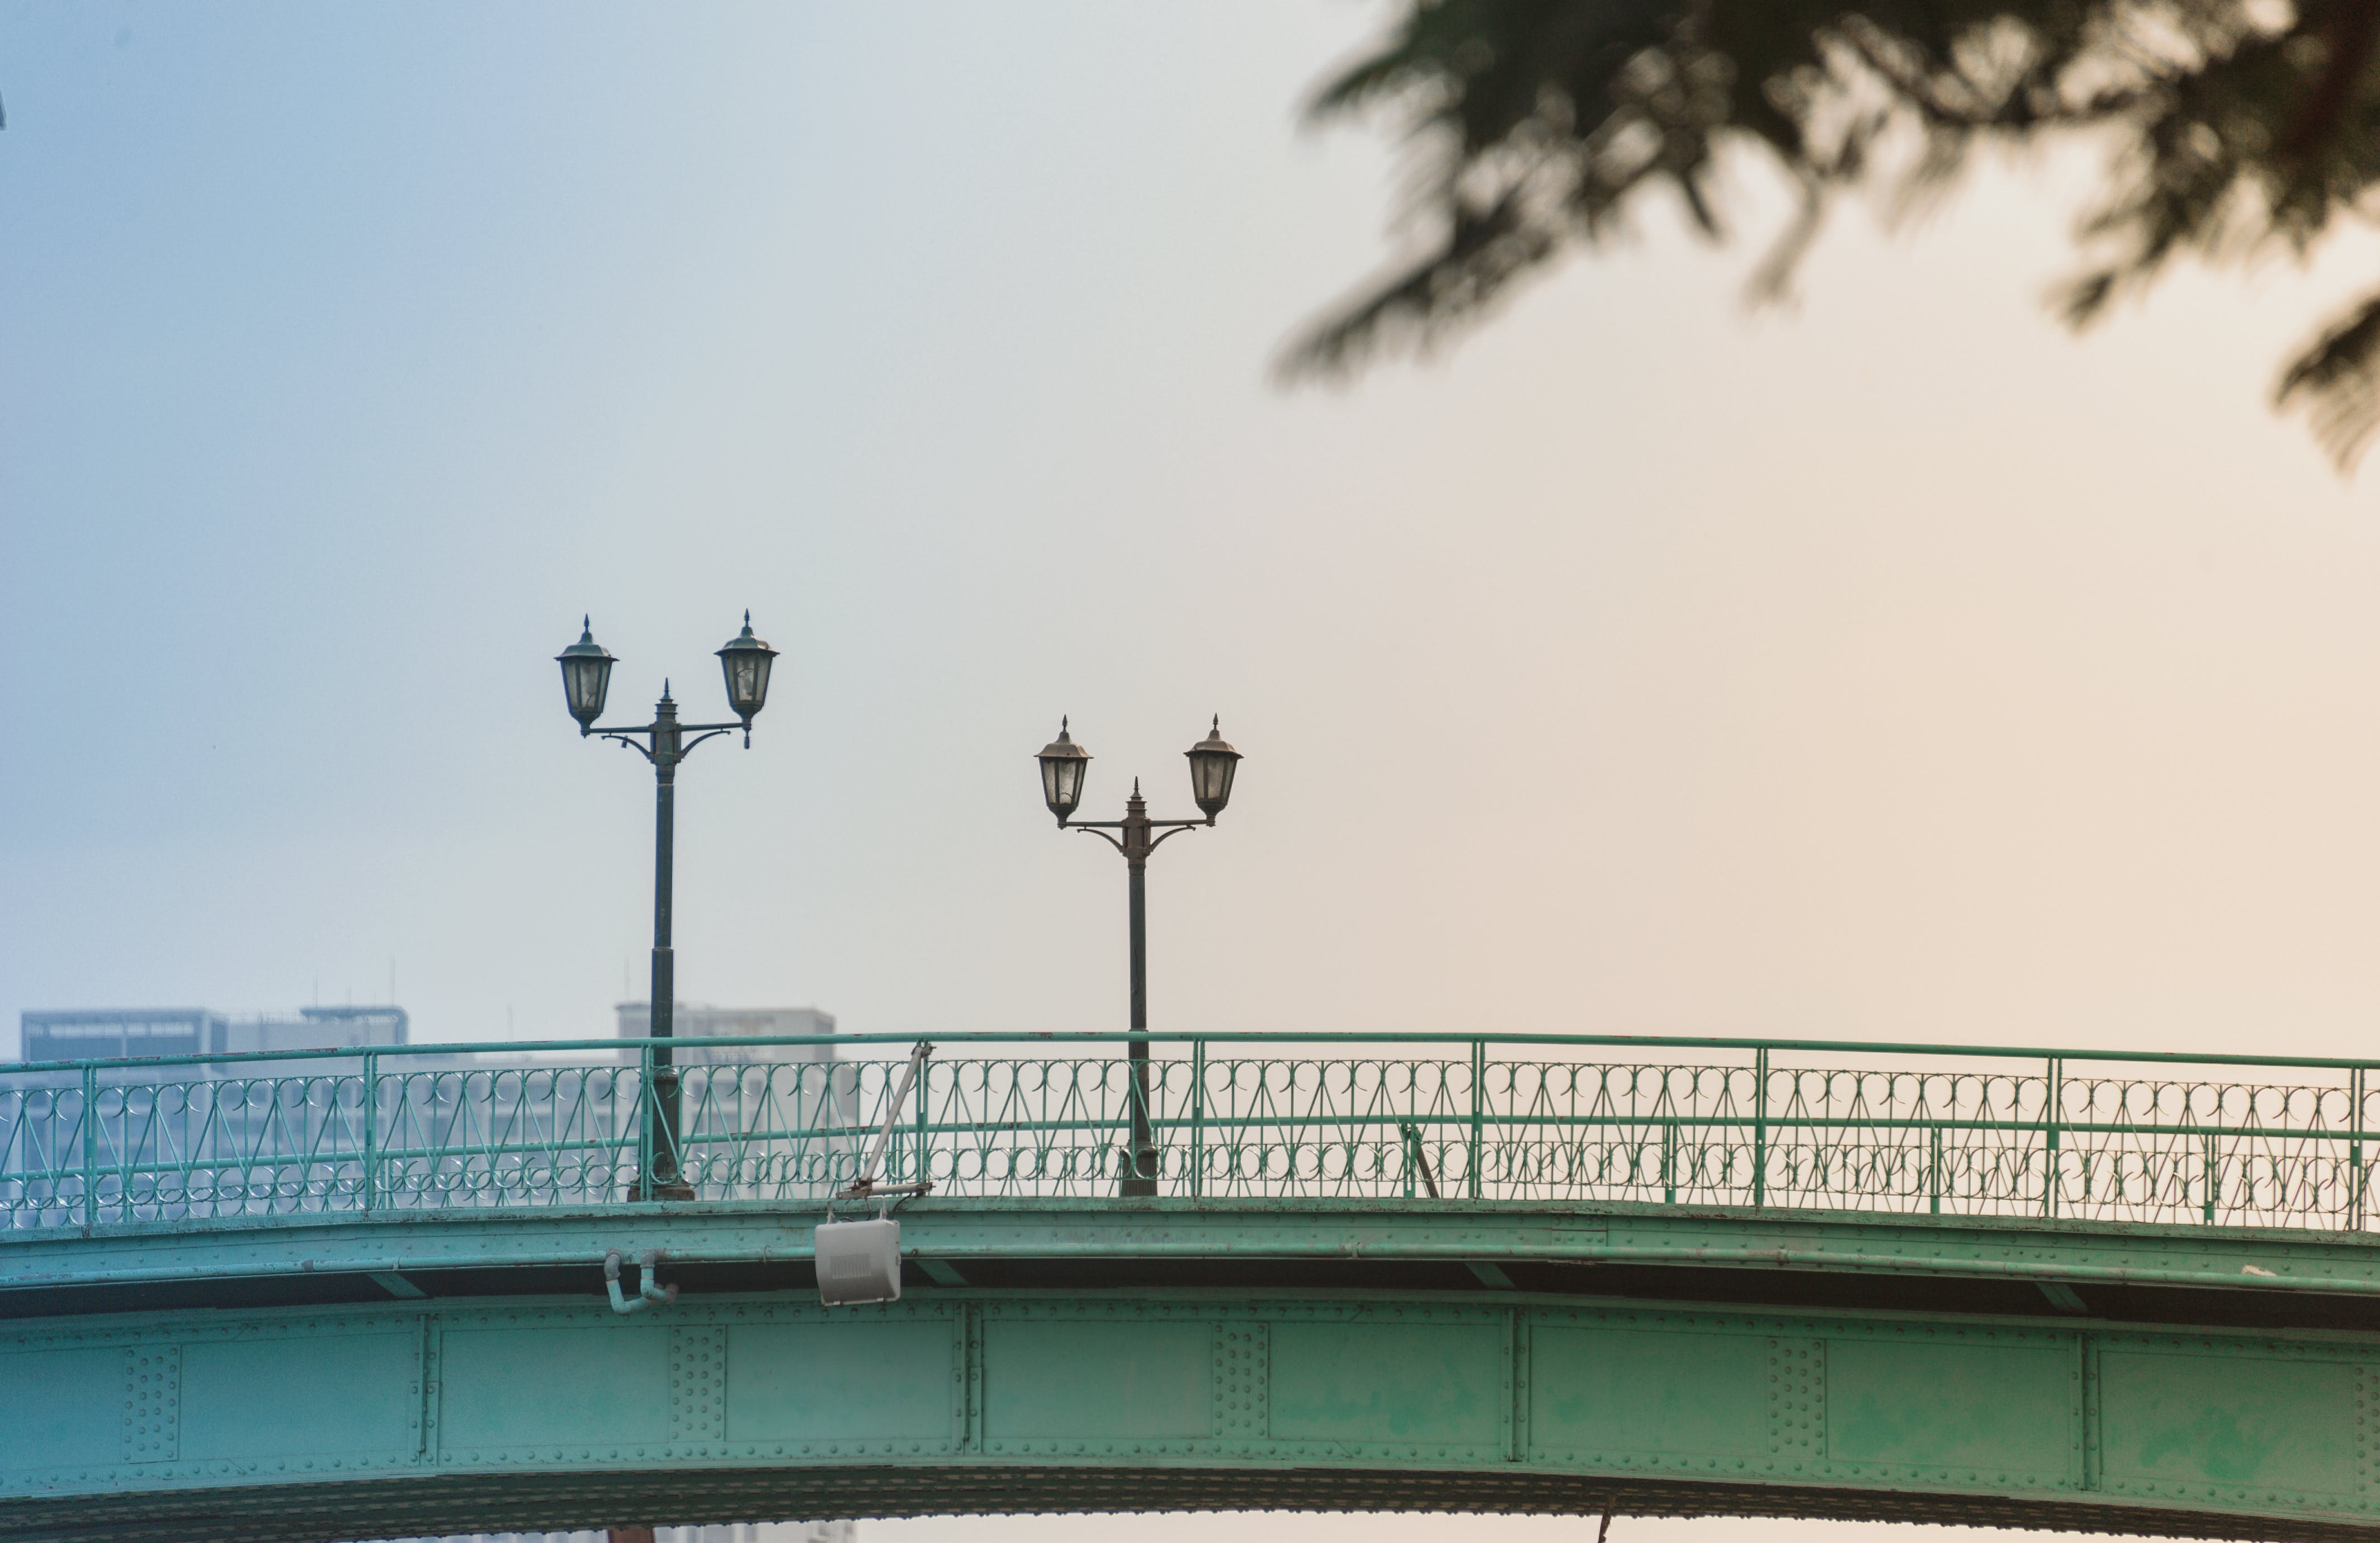 Two Road Lights on Bridge